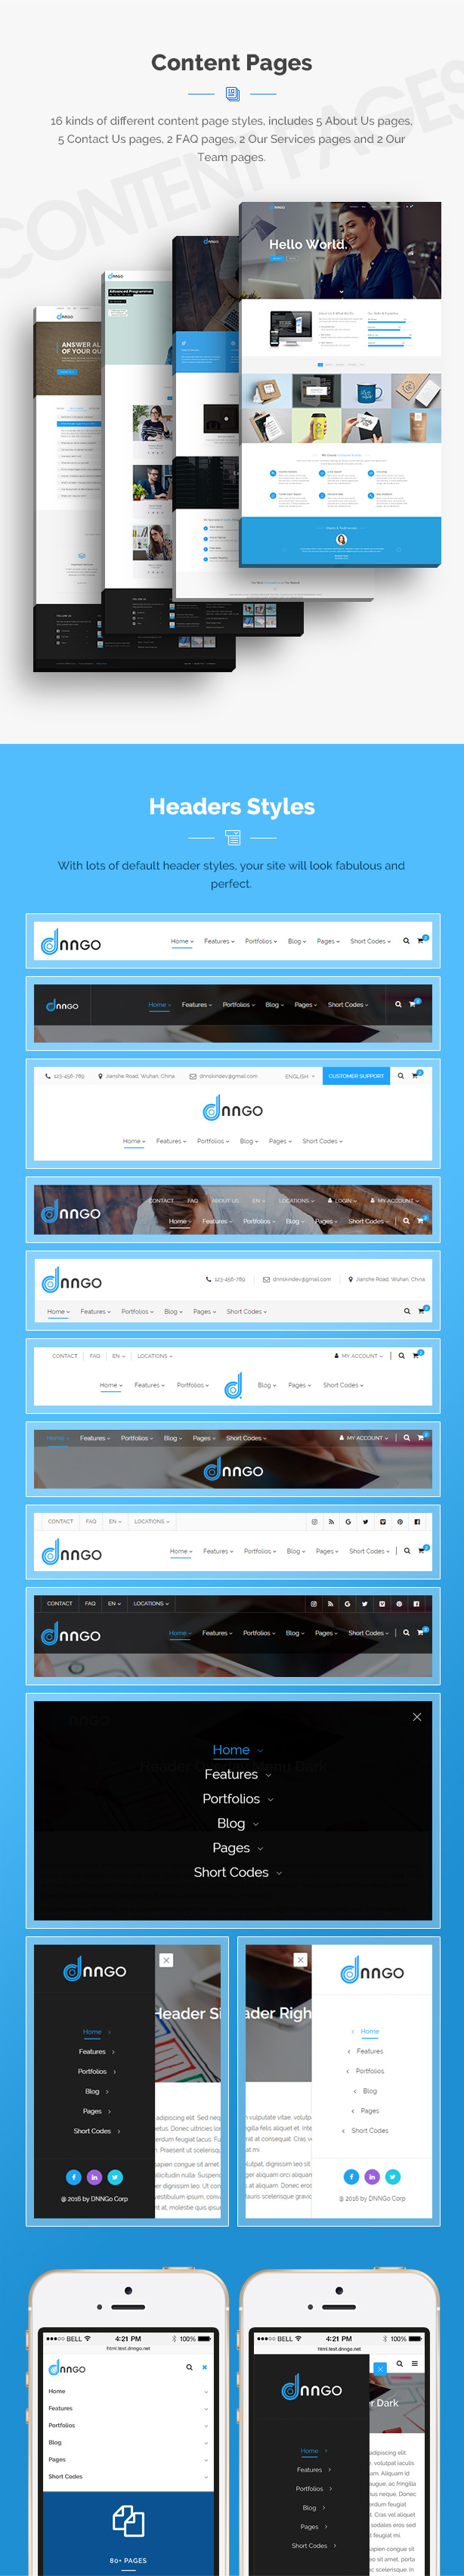 DNG - Responsive HTML5 Template - 25